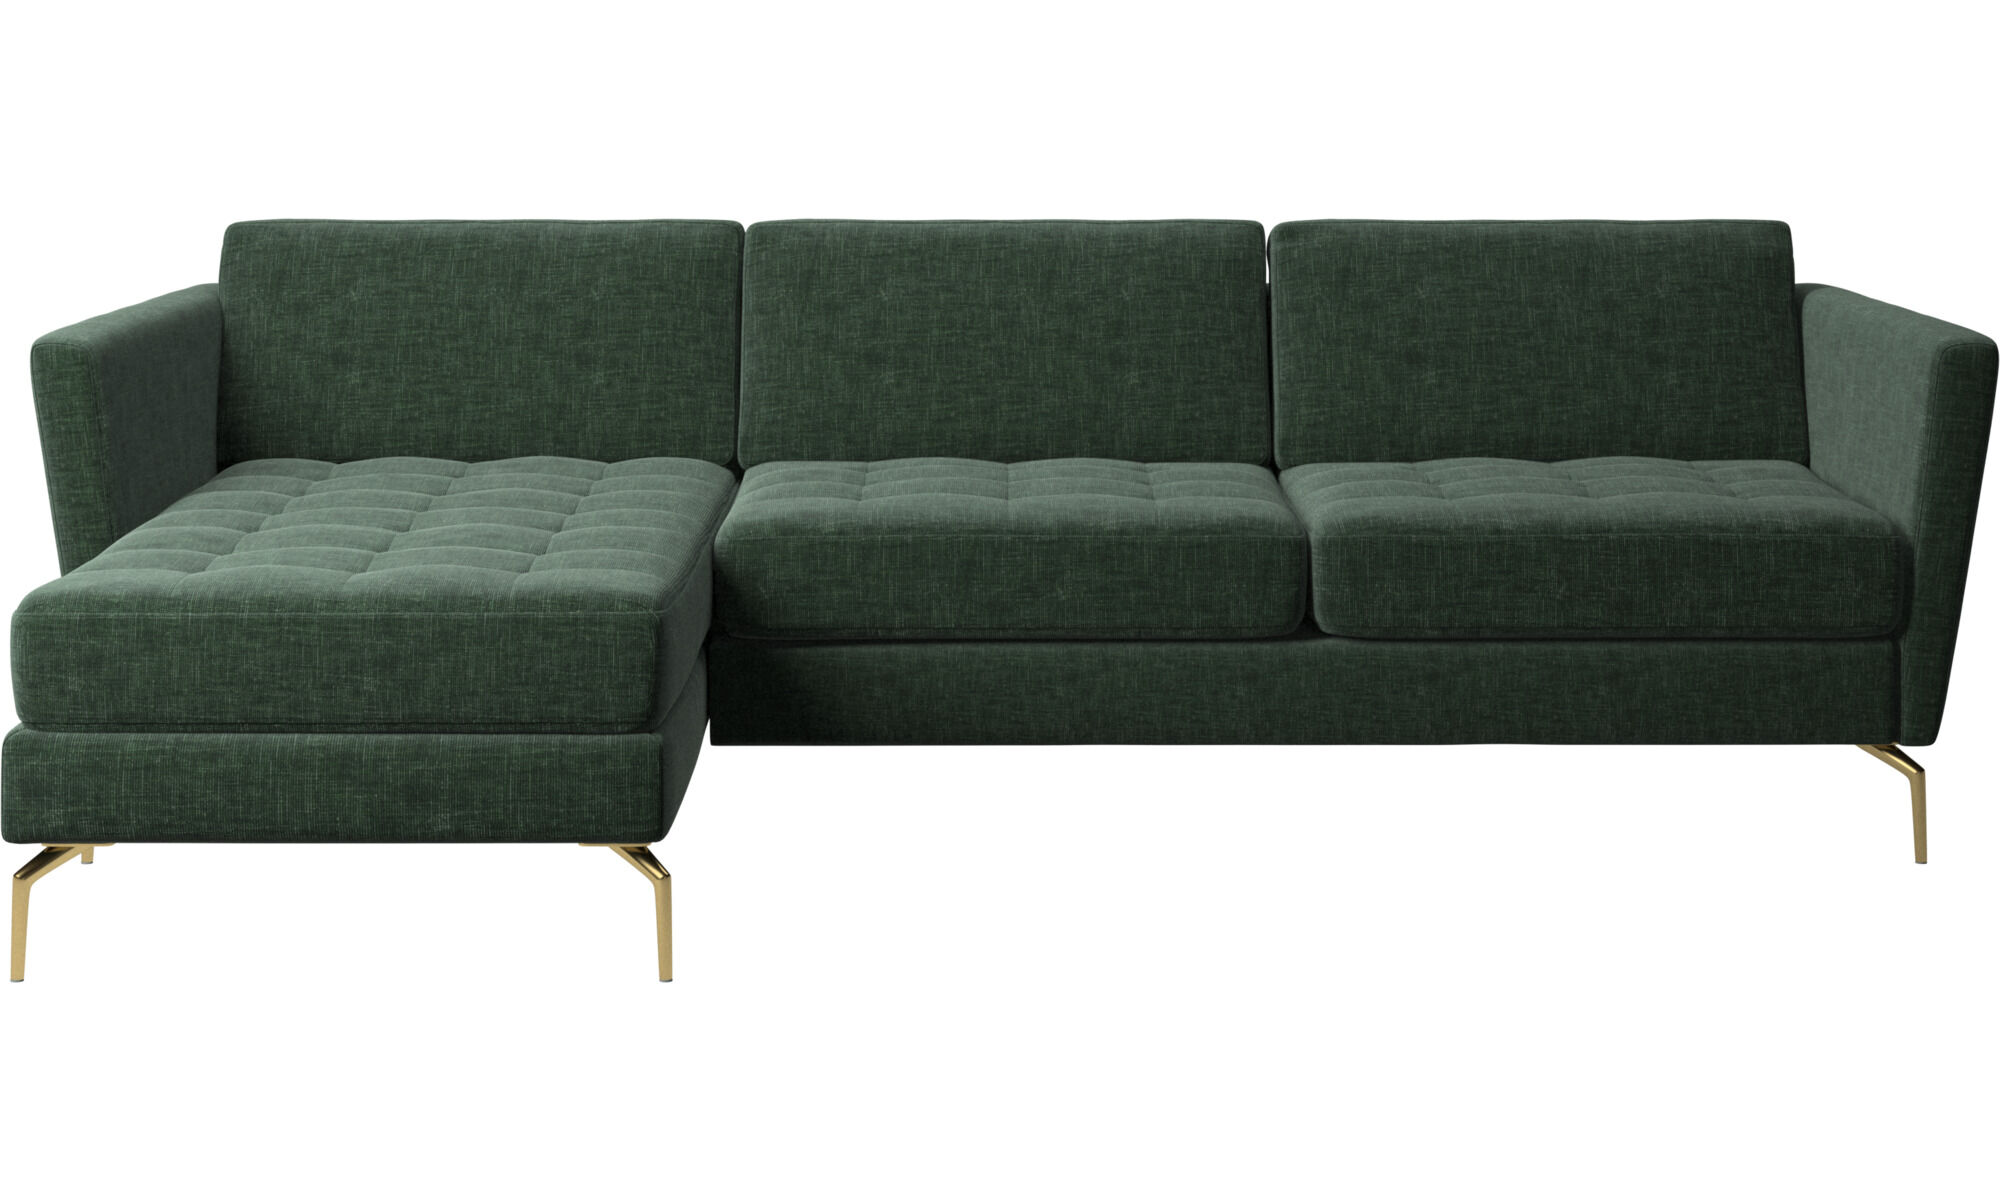 Chaise Lounge Sofas   Osaka Sofa With Resting Unit, Tufted Seat   Green    Fabric